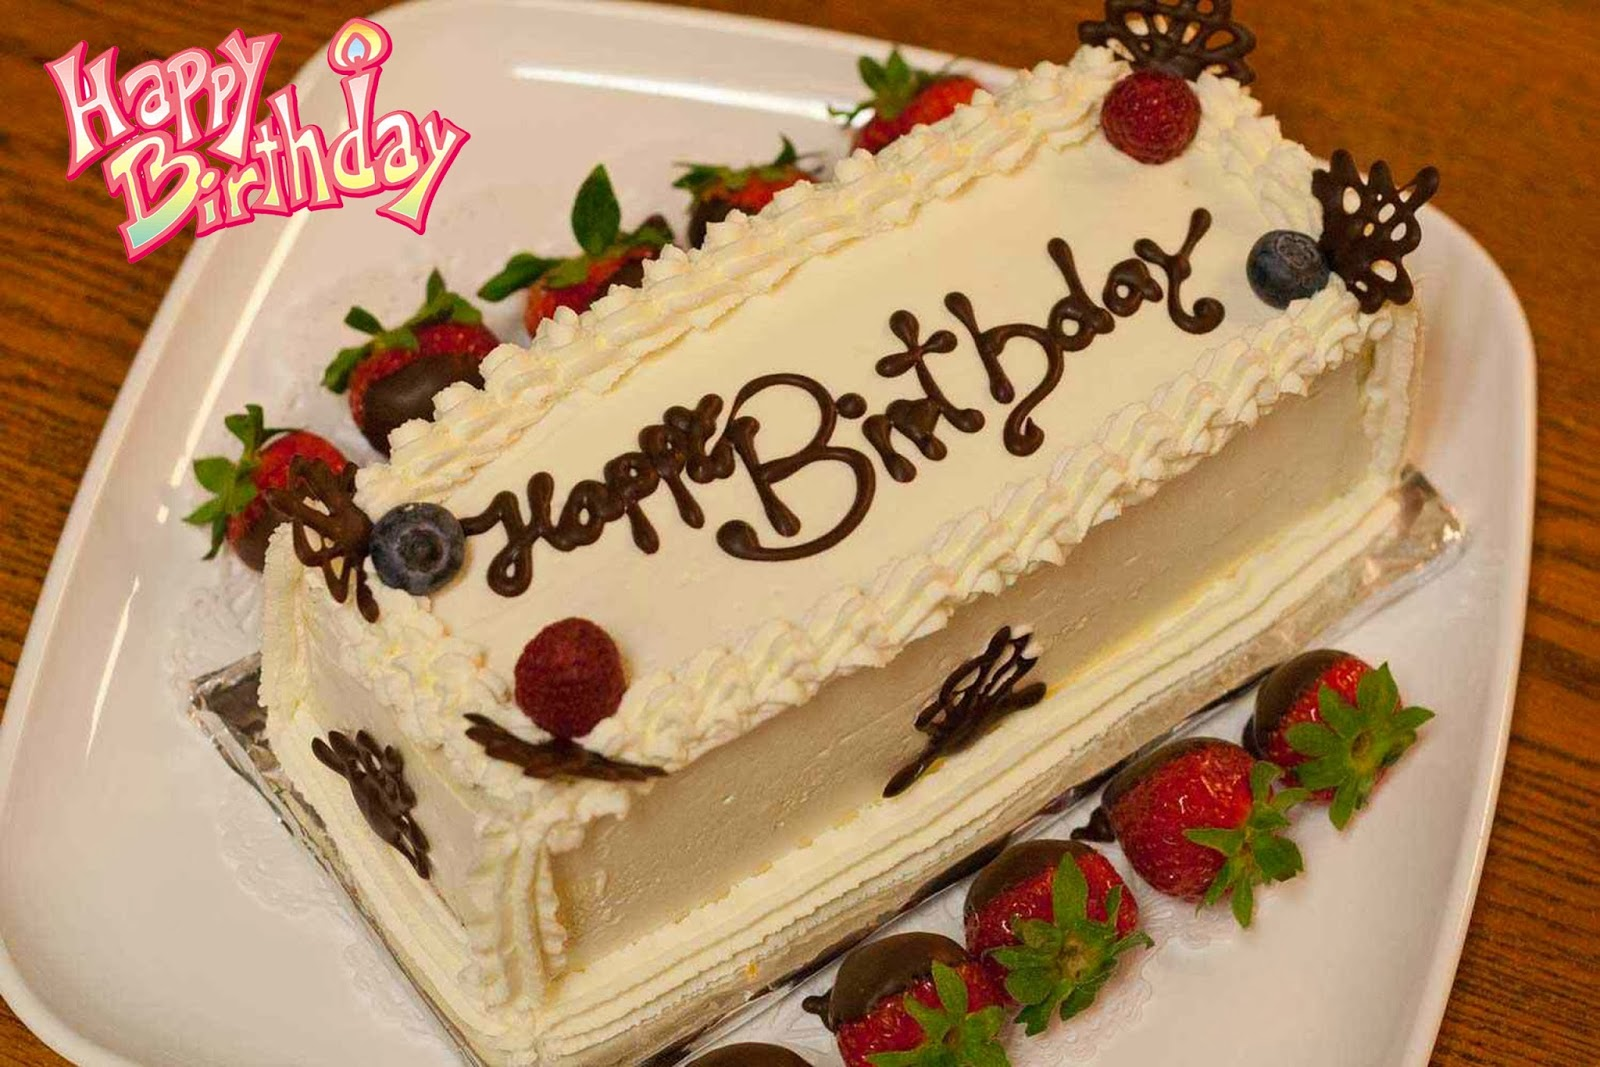 Happy-Birthday-Butter-Cake-With-Strawberry-Image-HD